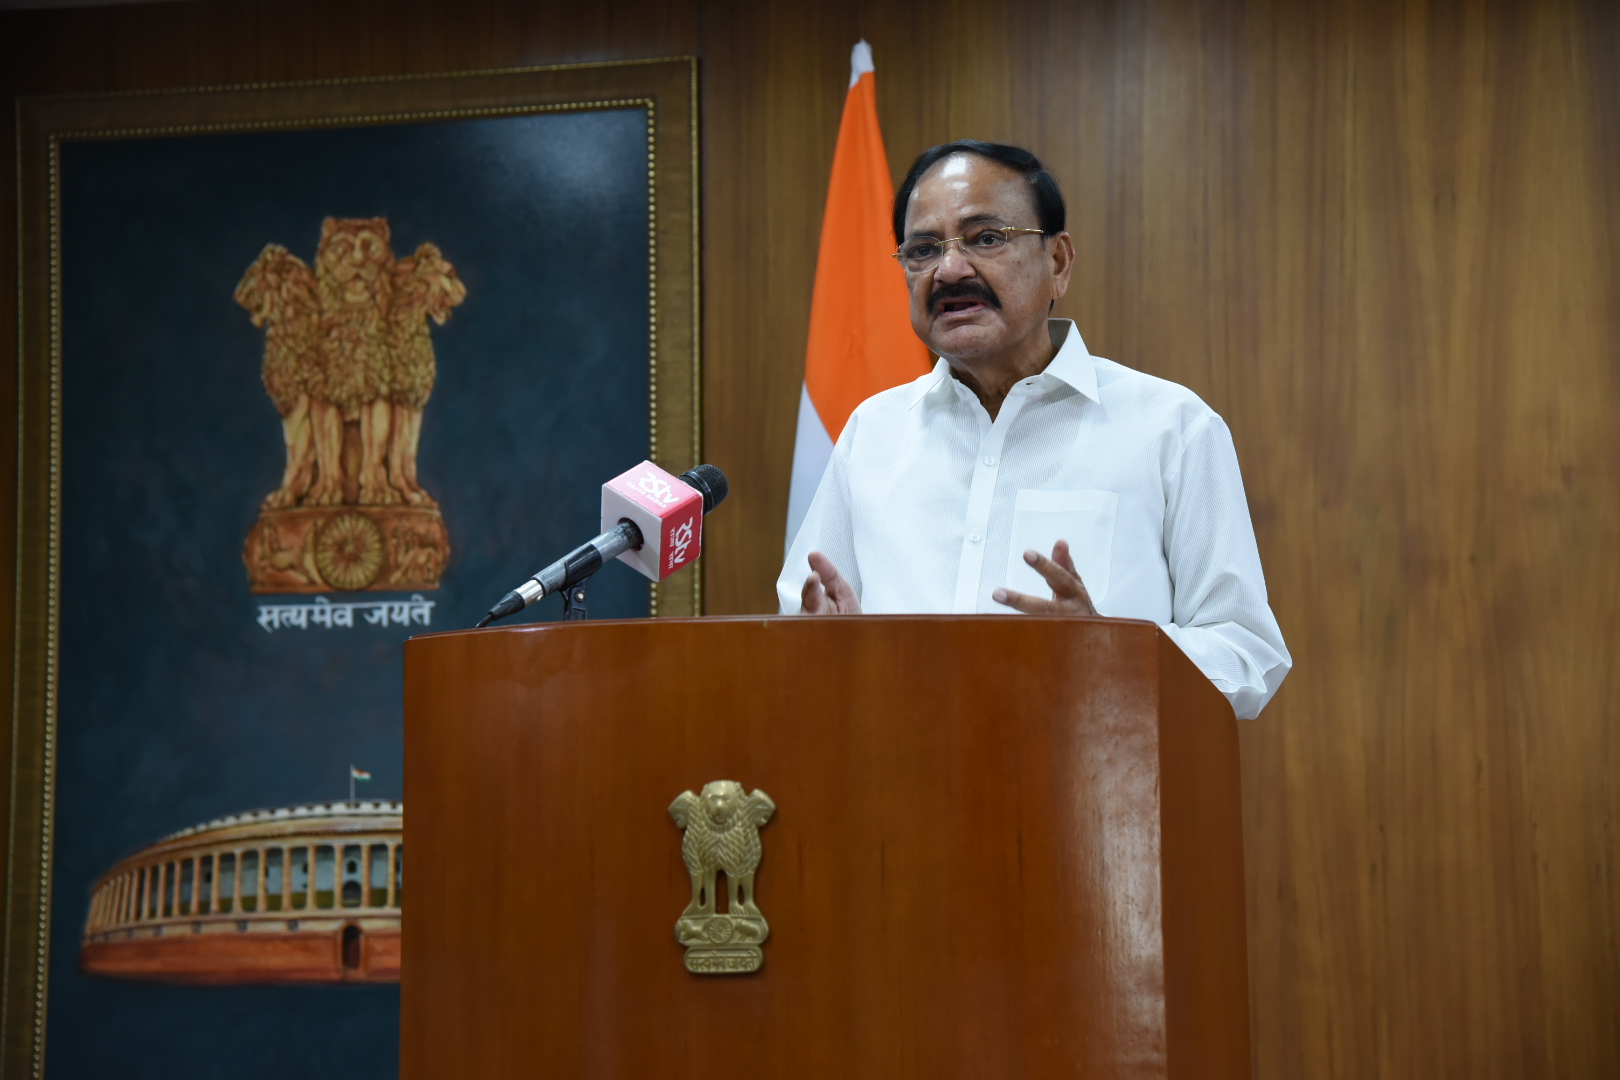 The Vice President, Shri M. Venkaiah Naidu addressing after virtually releasing the indigenous social media super app – Elyments in New Delhi on July 05, 2020.